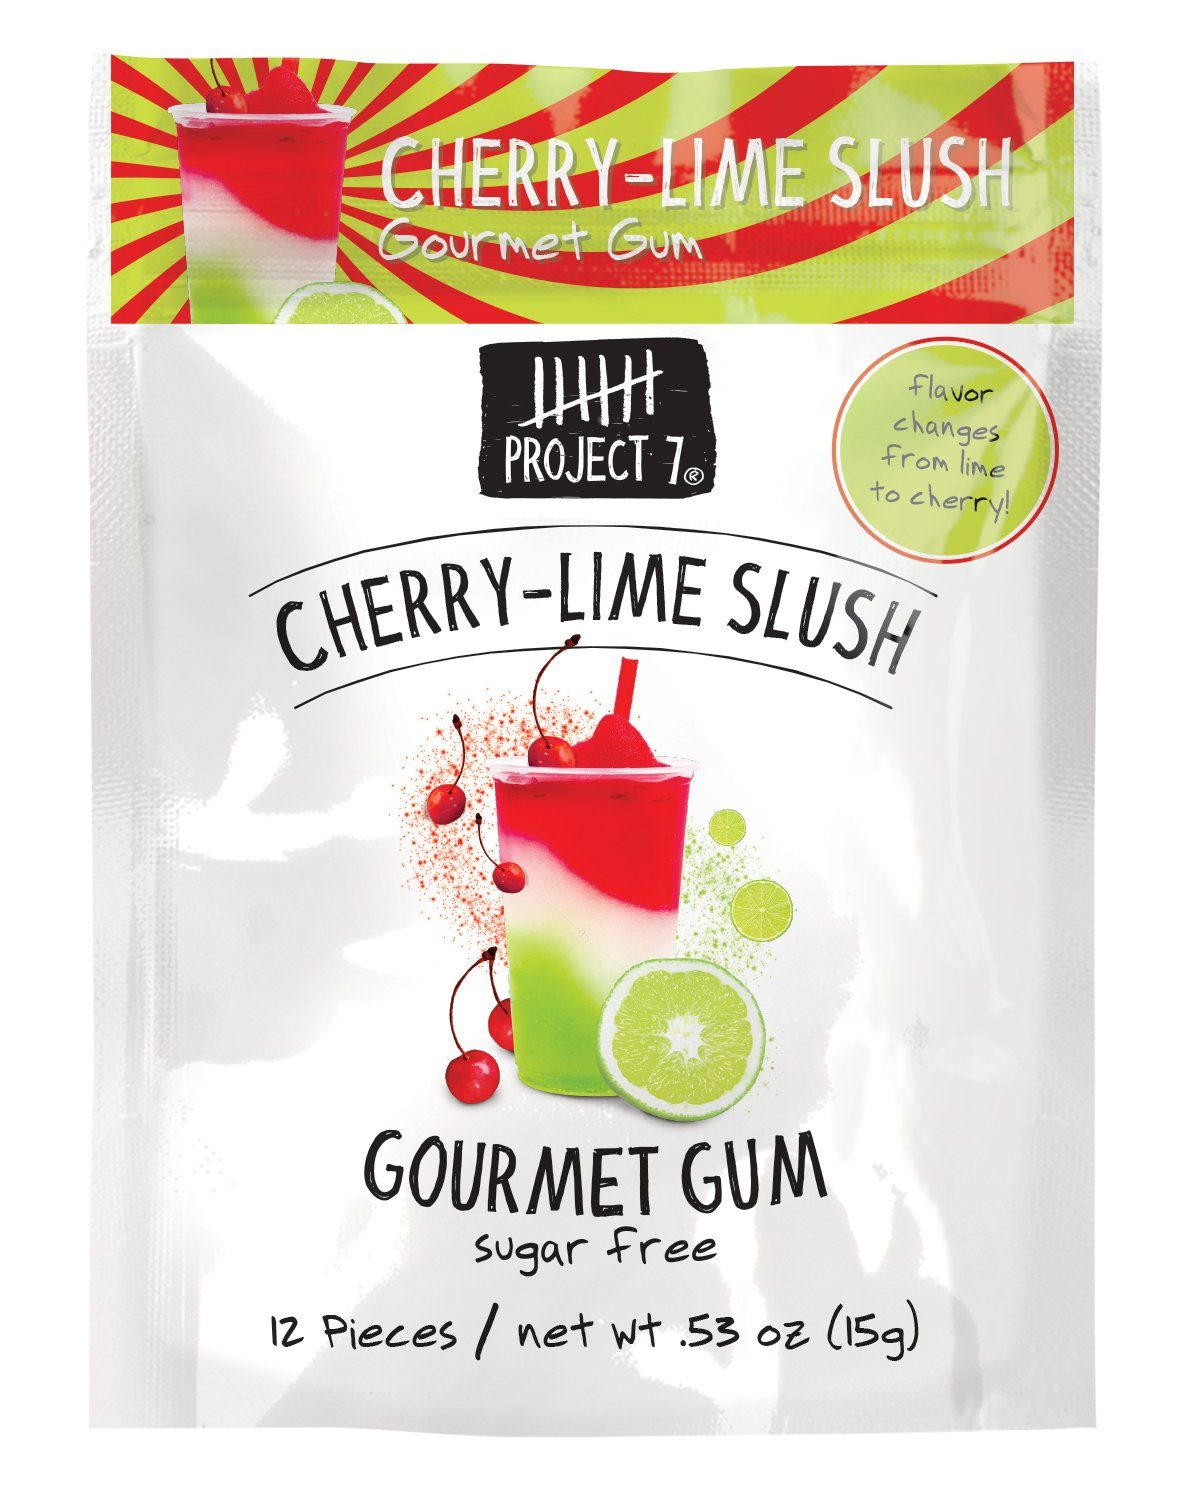 Project 7 Gourmet Gum Sugar Free Snackathon Foods Cherry-Lime Slush 0.53 Ounce